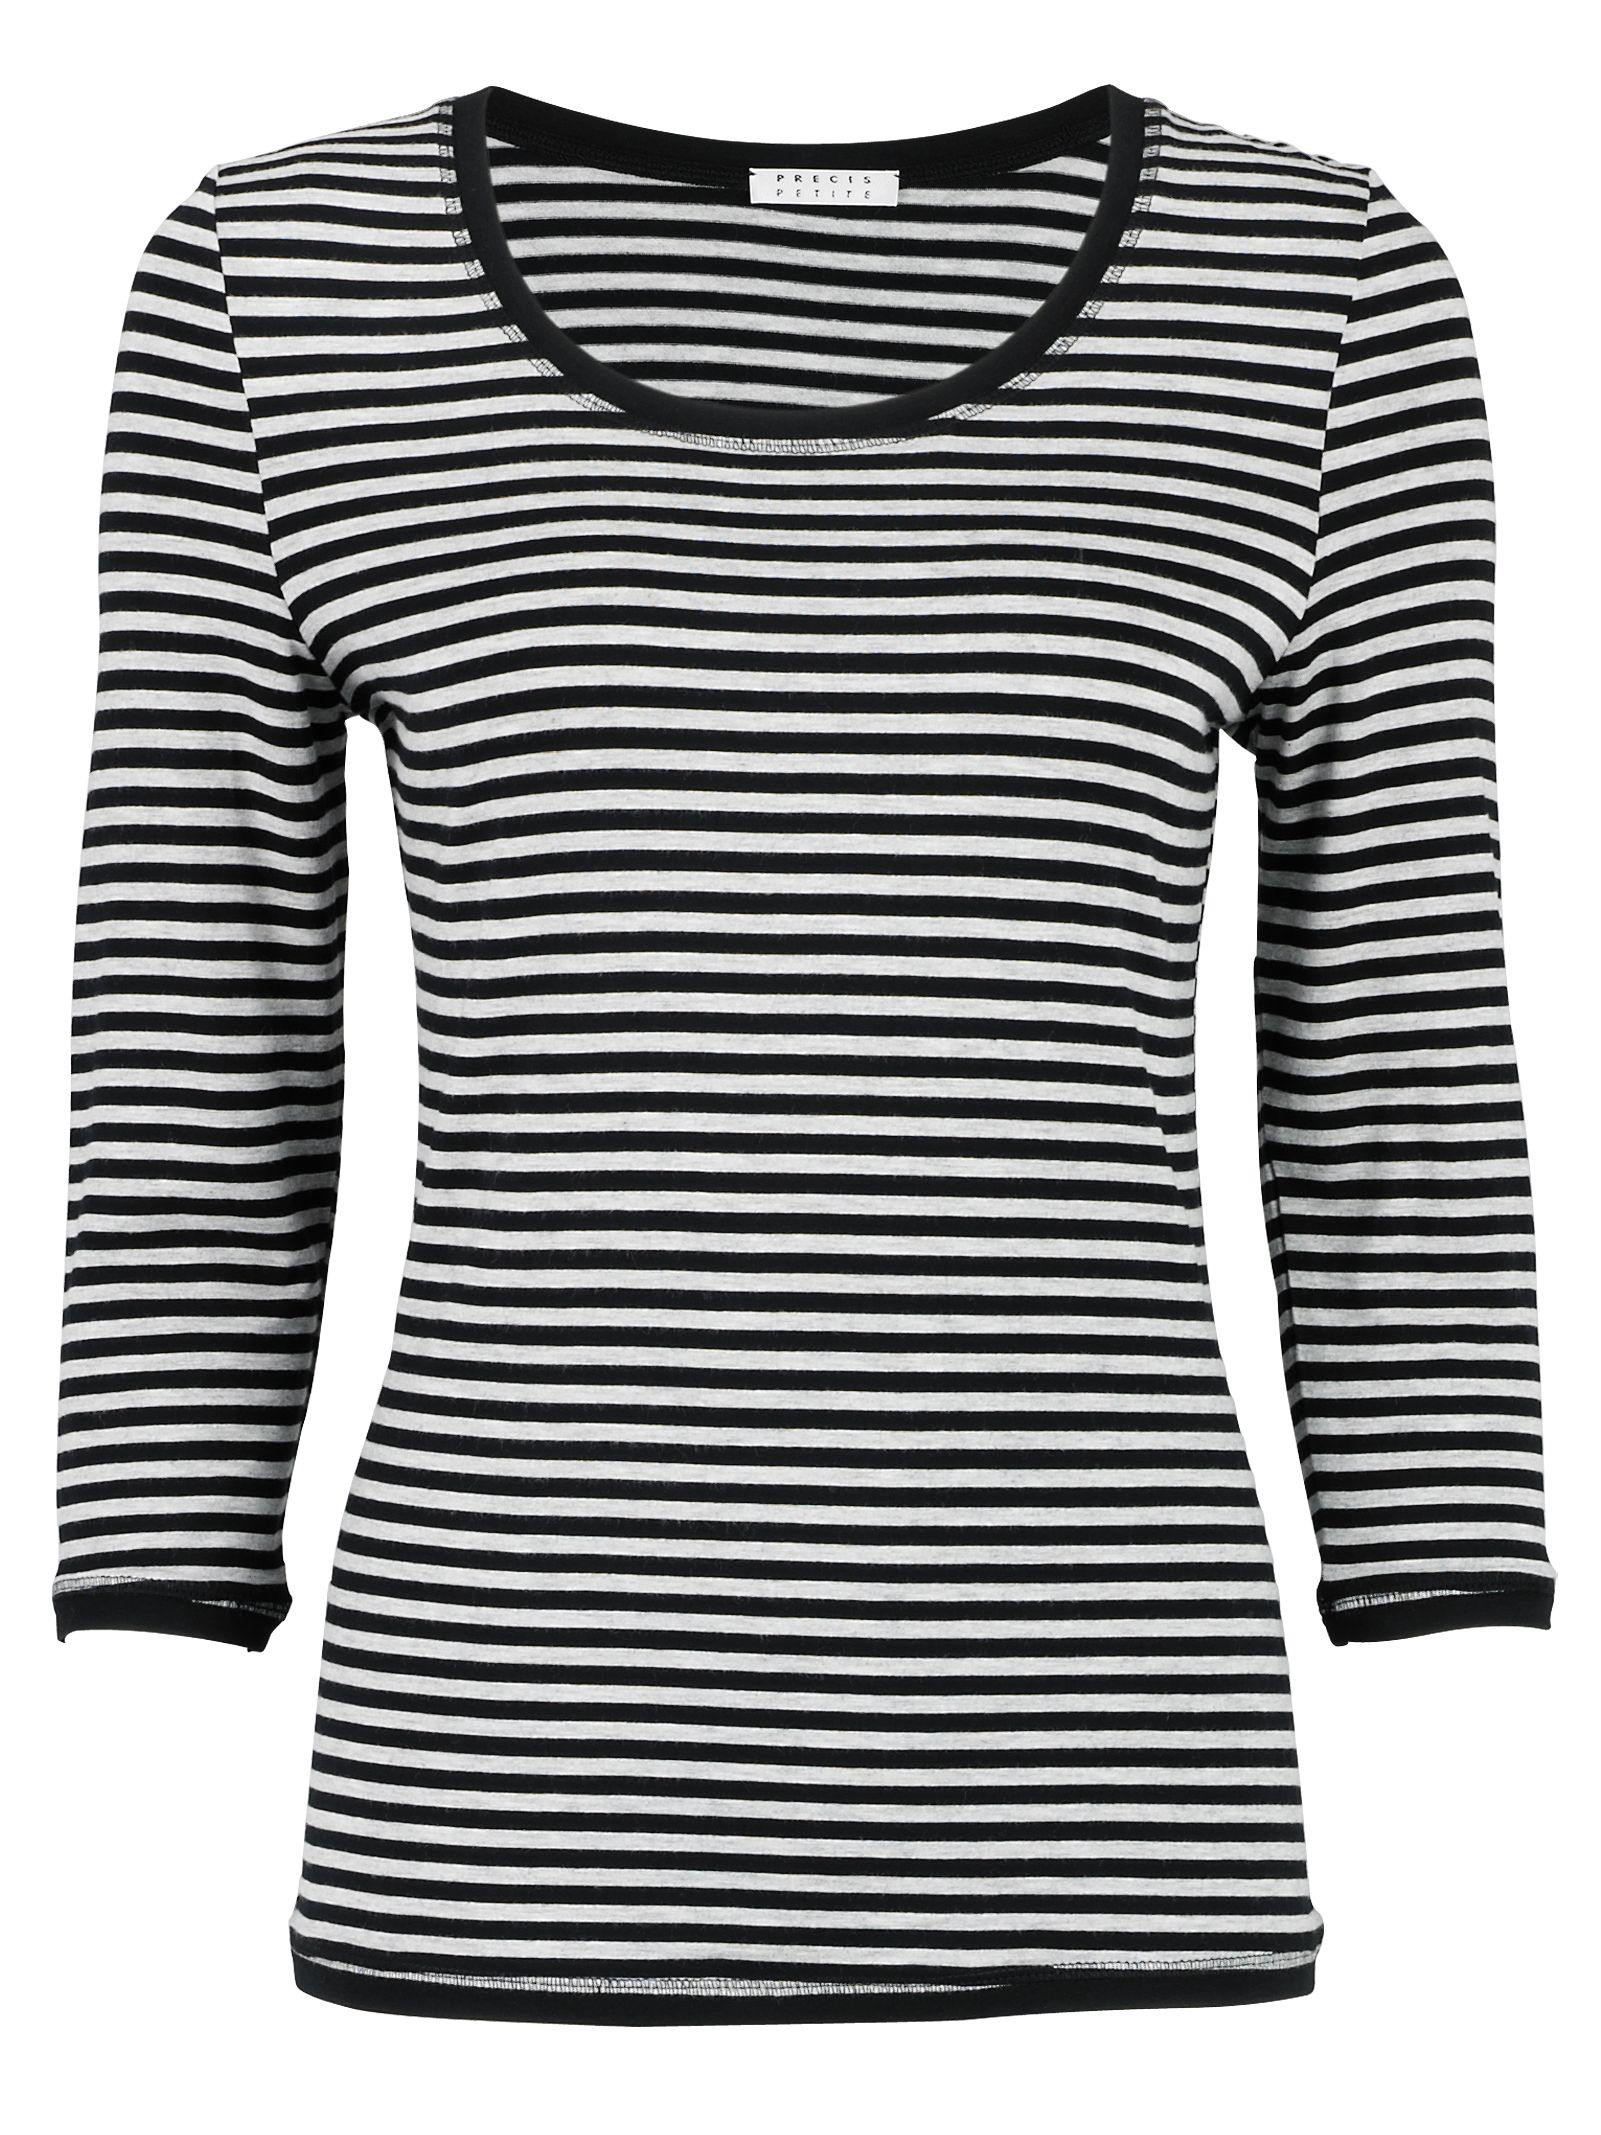 Precis Petite Stripe Print Long Sleeve Top, Black/white